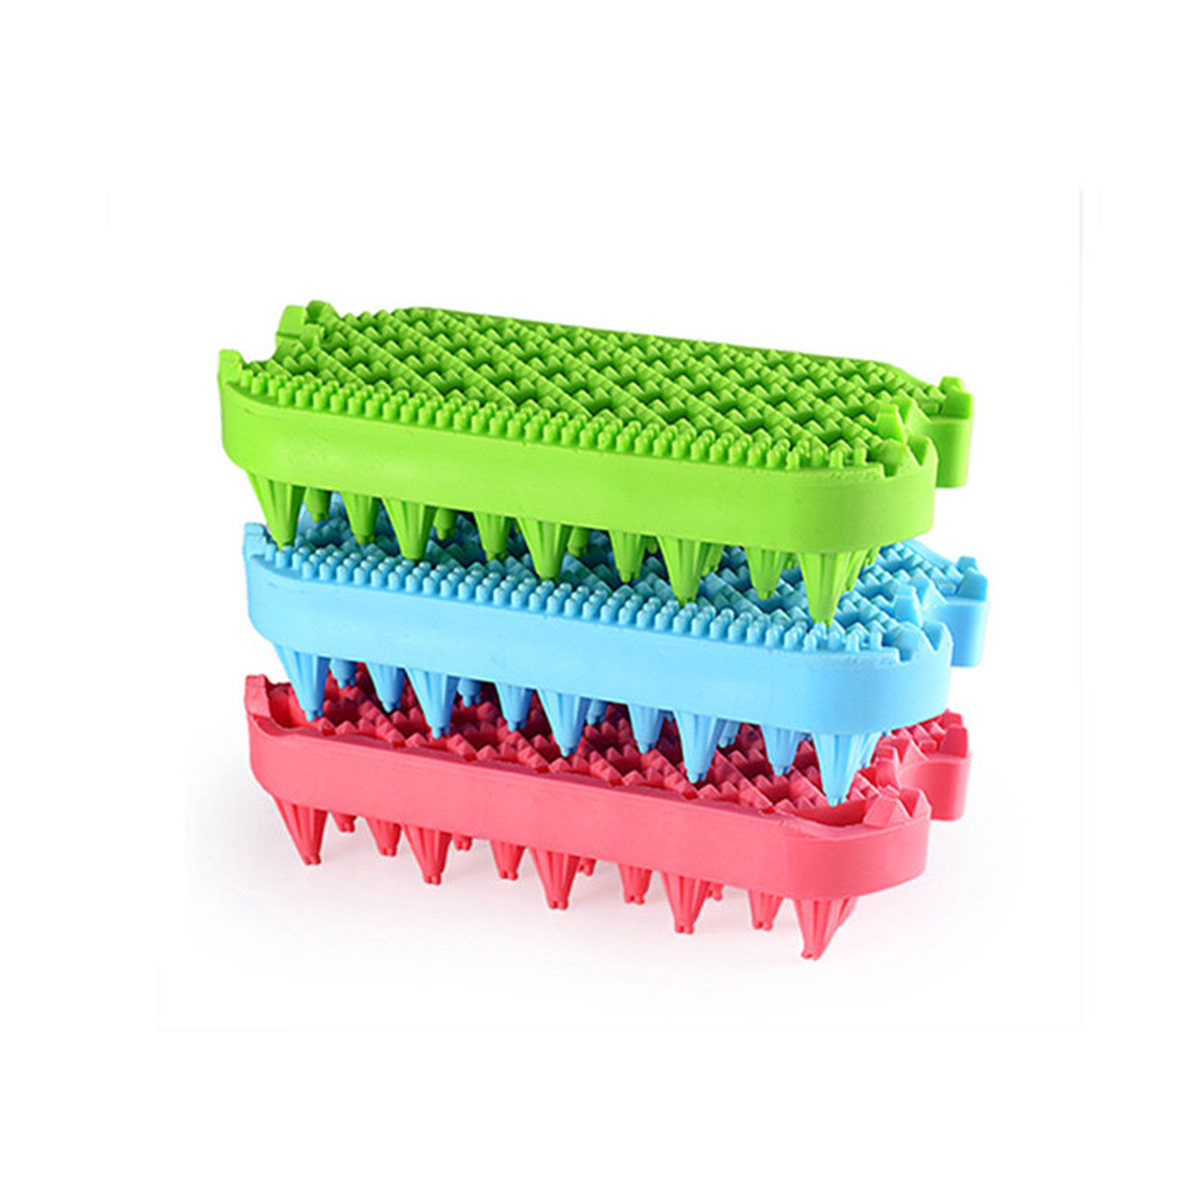 2 in 1 Double Sides Pet Dog Cat Comb Soft Rubber Dogs Cats Bath Massage Brush Hair Removing Grooming Cleaning Washing Tool